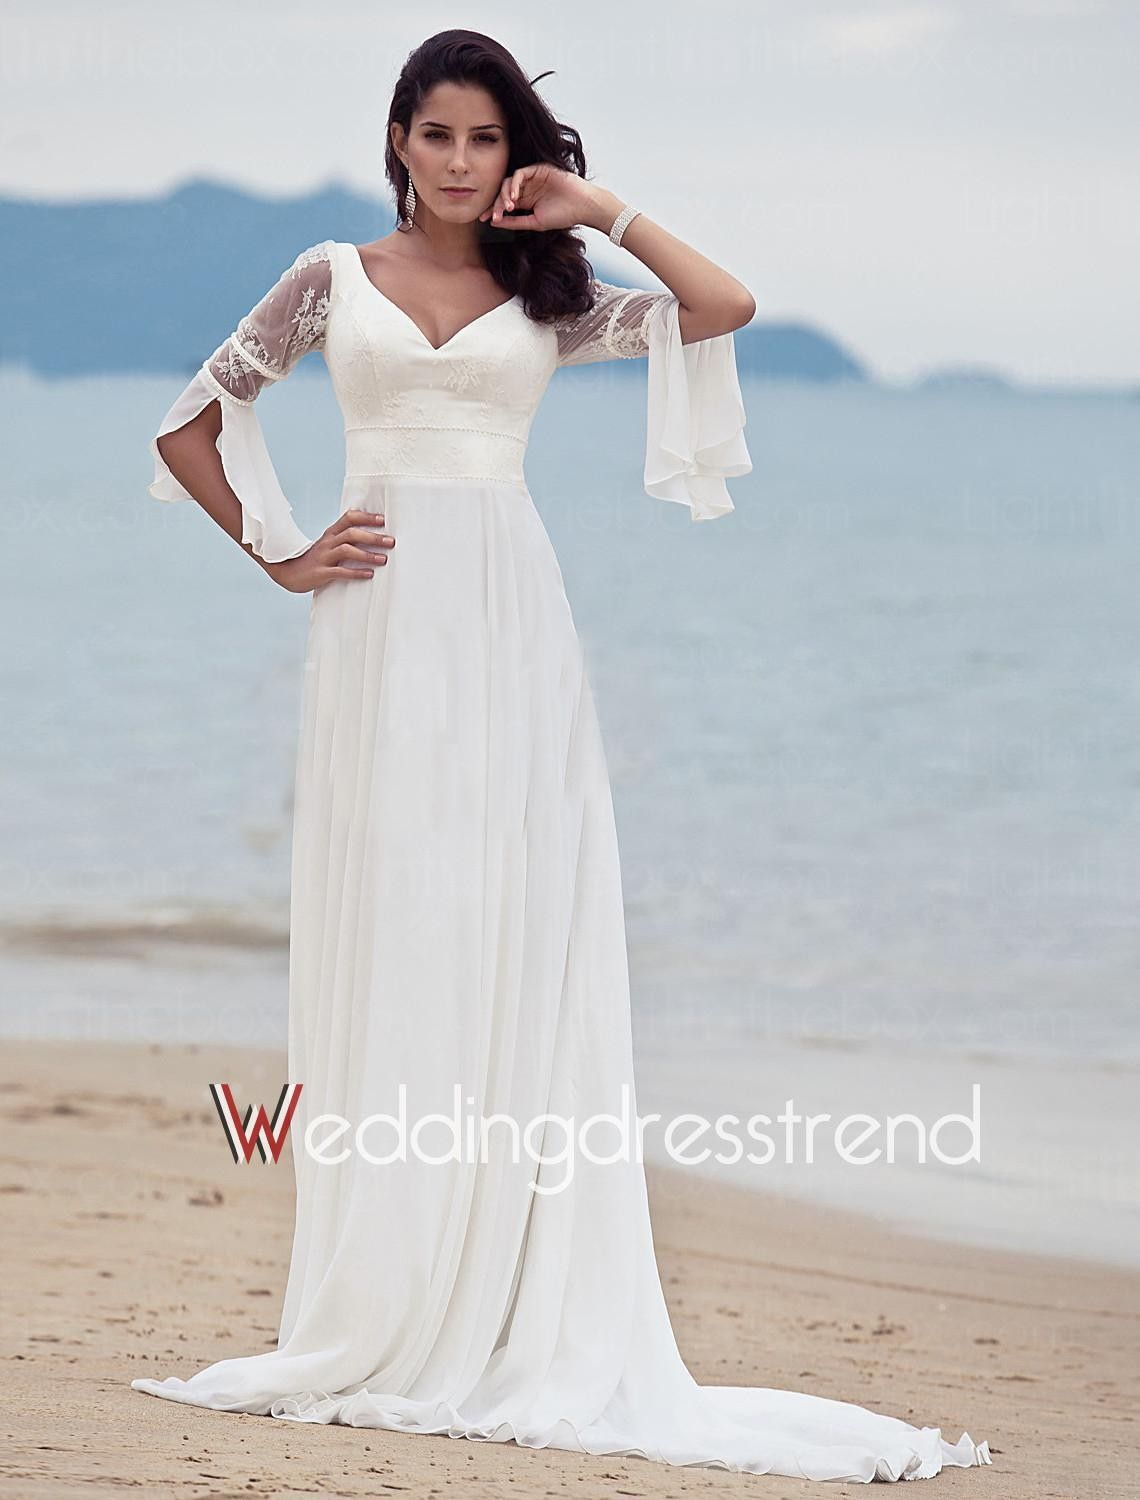 2018 Beach Wedding Dresses with Sleeves - Plus Size Dresses for ...